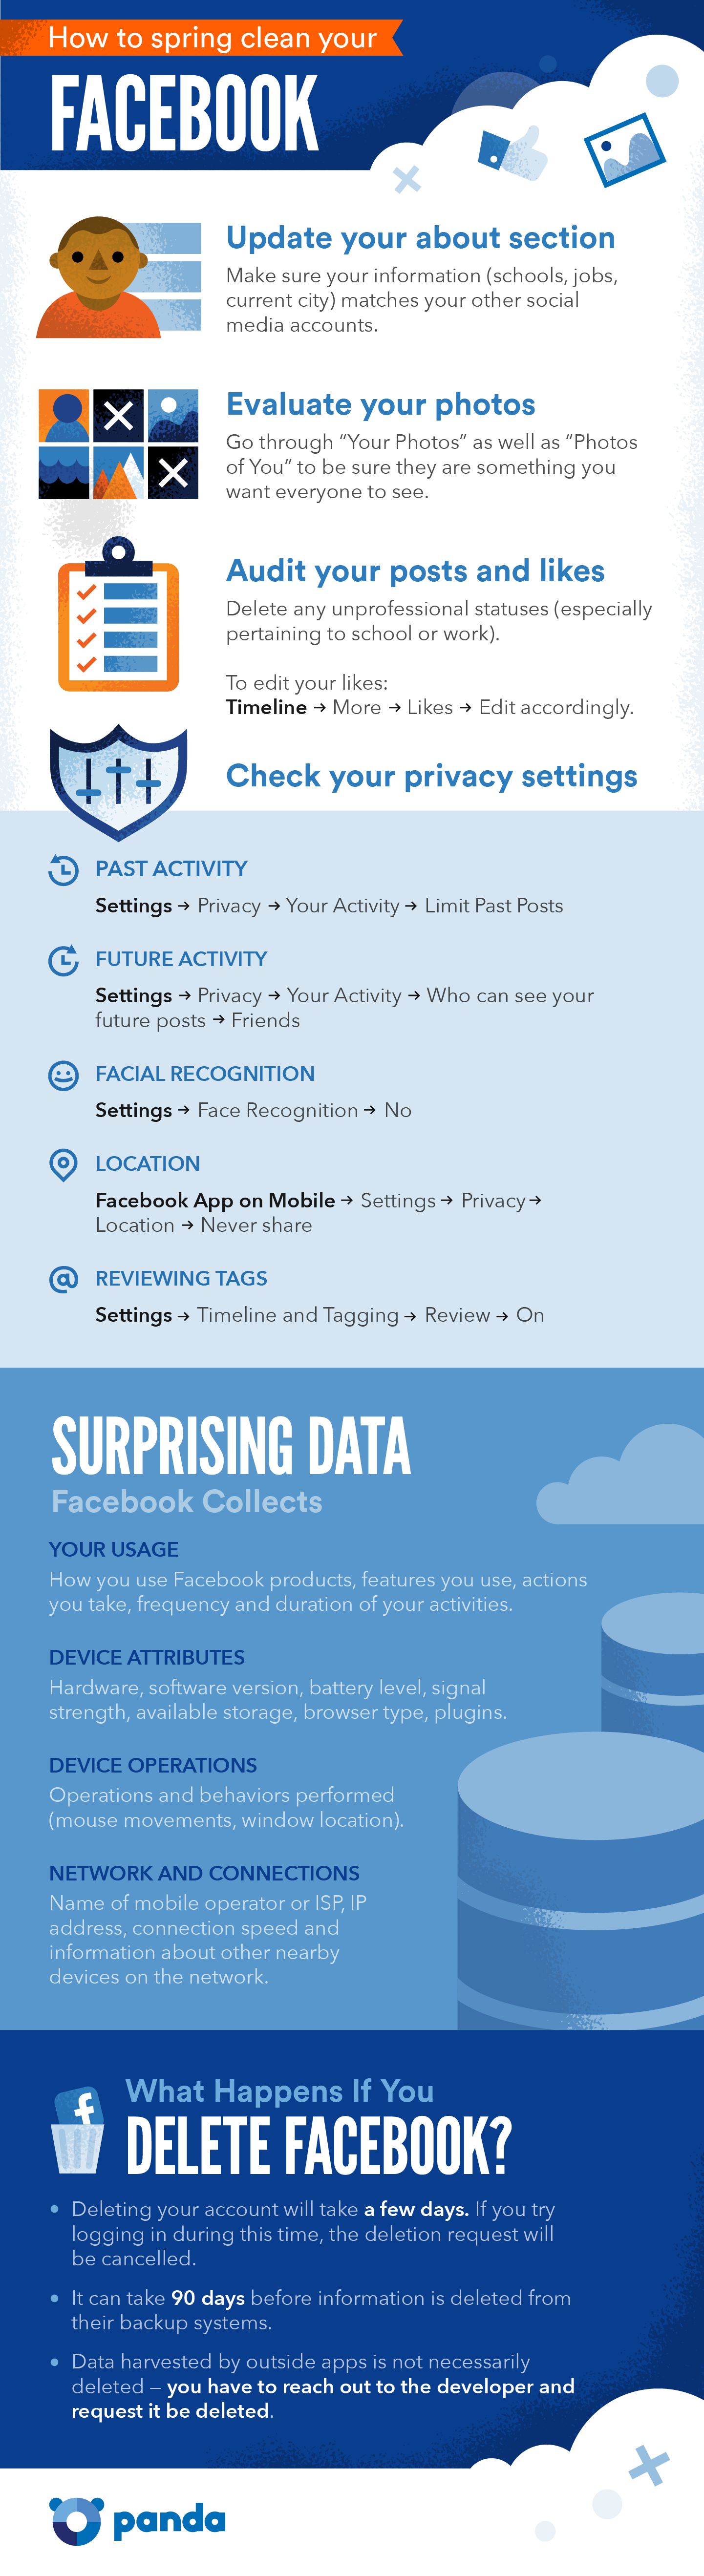 how to spring clean your Facebook Infographic